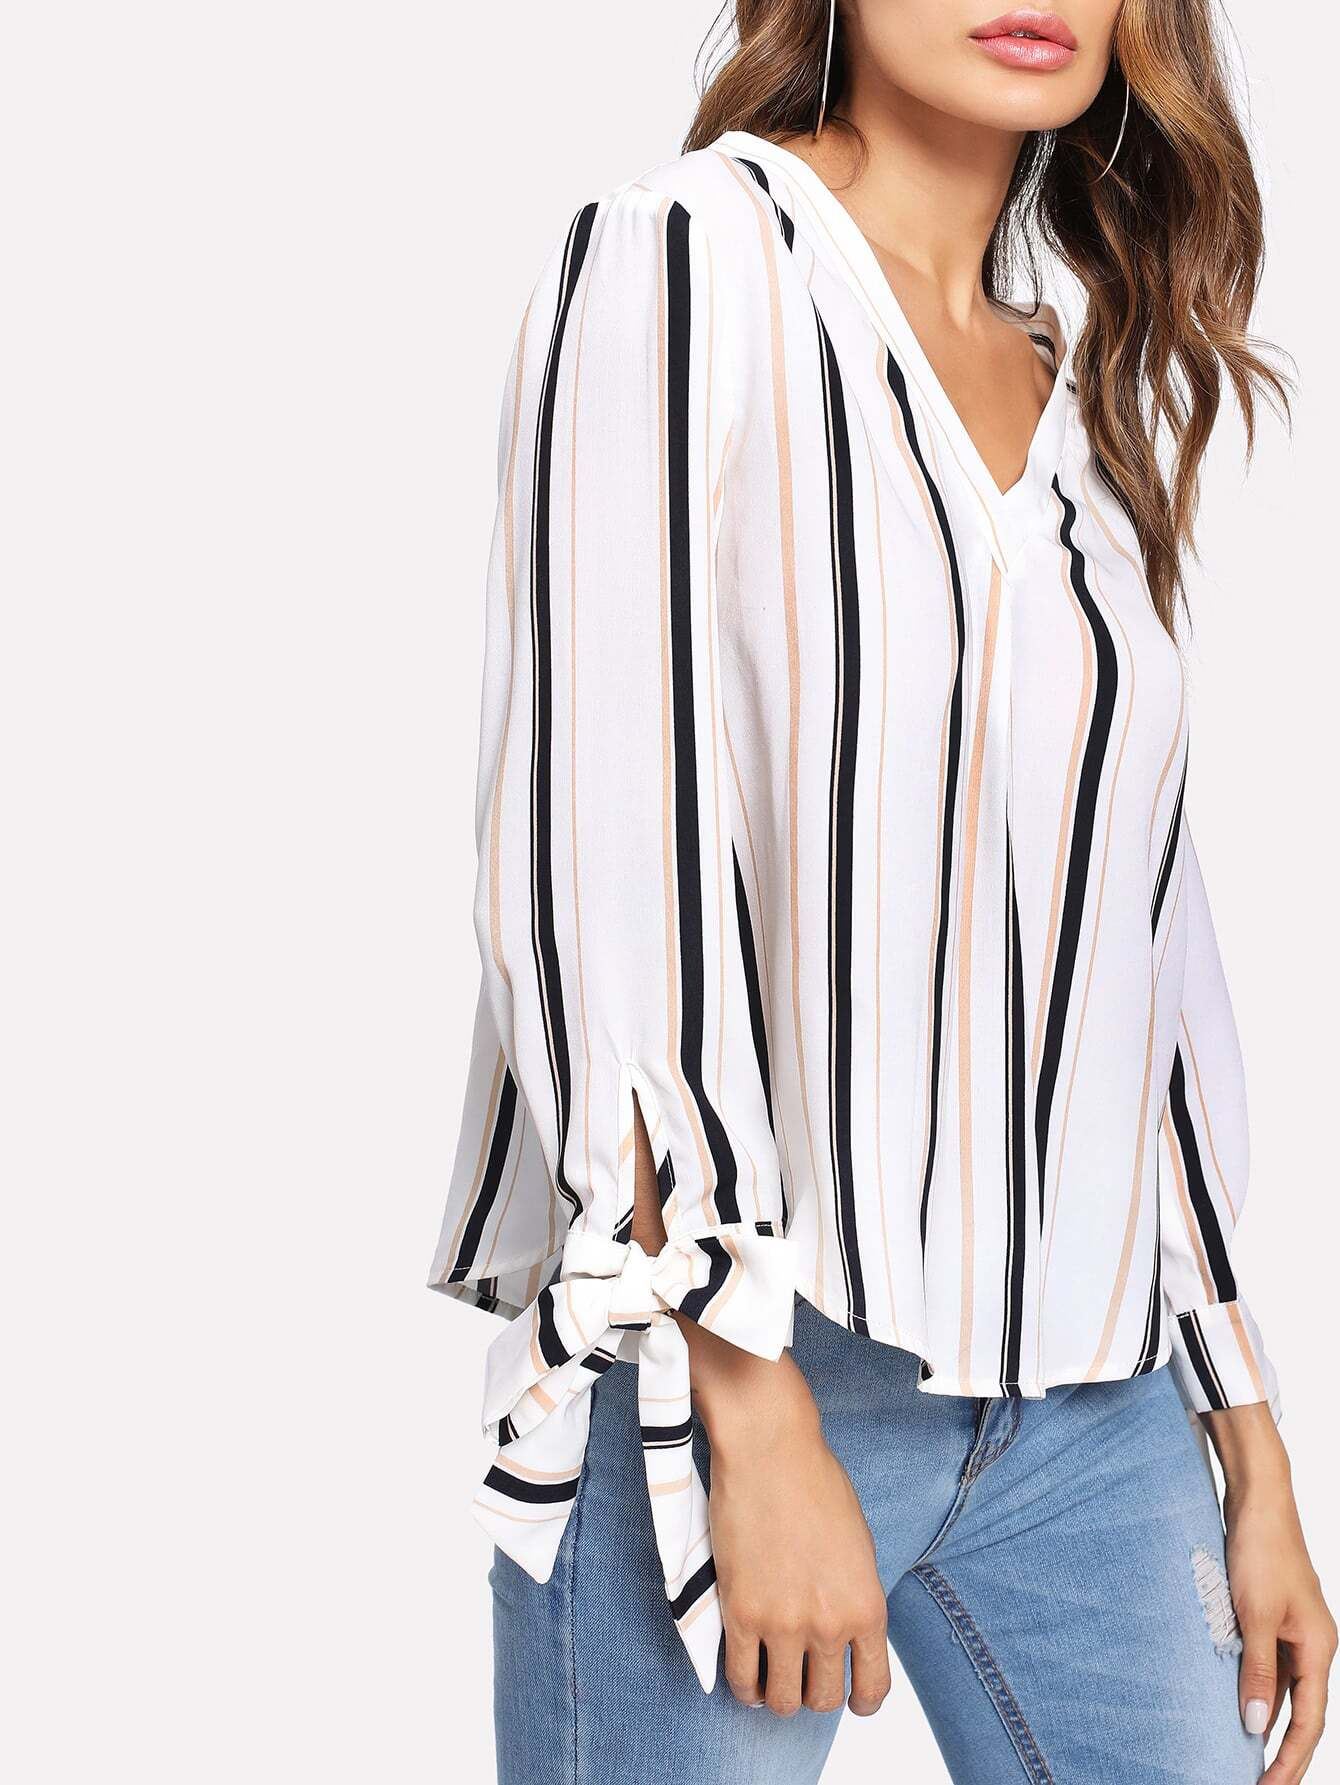 Bow Tied Cuff Vertical Striped Blouse цена и фото